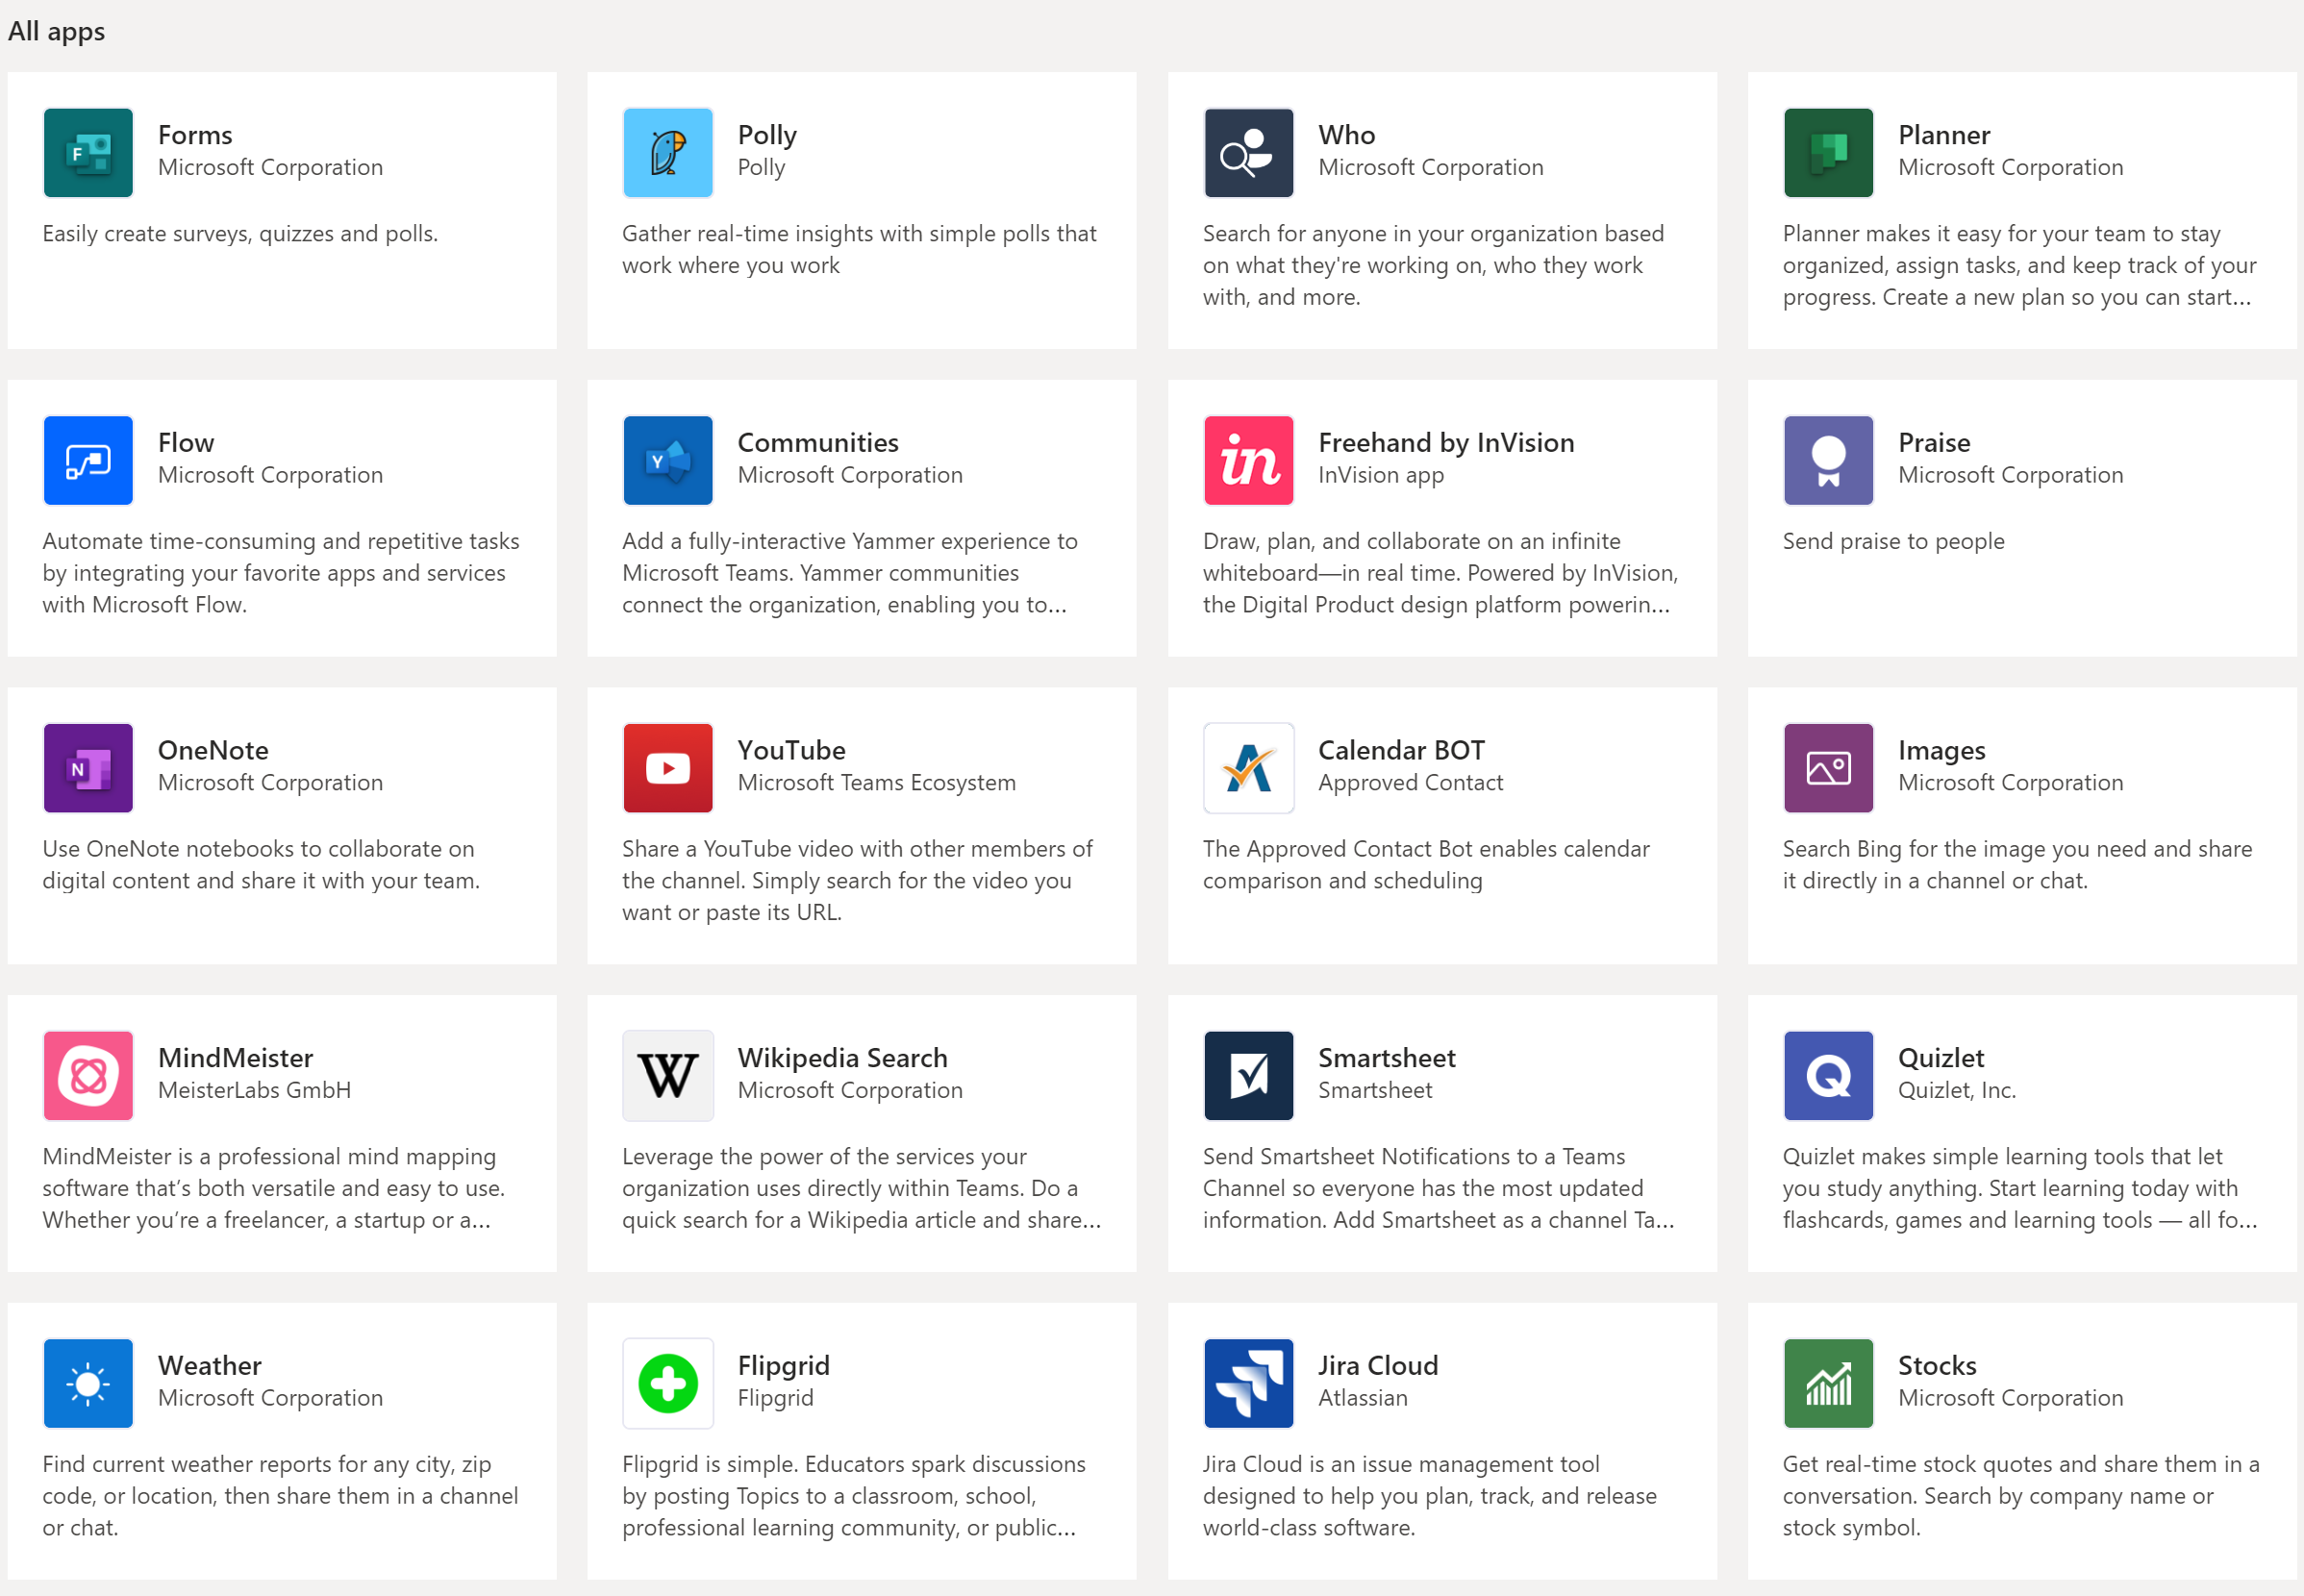 A screenshot of the Apps tab in Microsoft Teams, with a list of available apps laid out visually in a grid pattern.